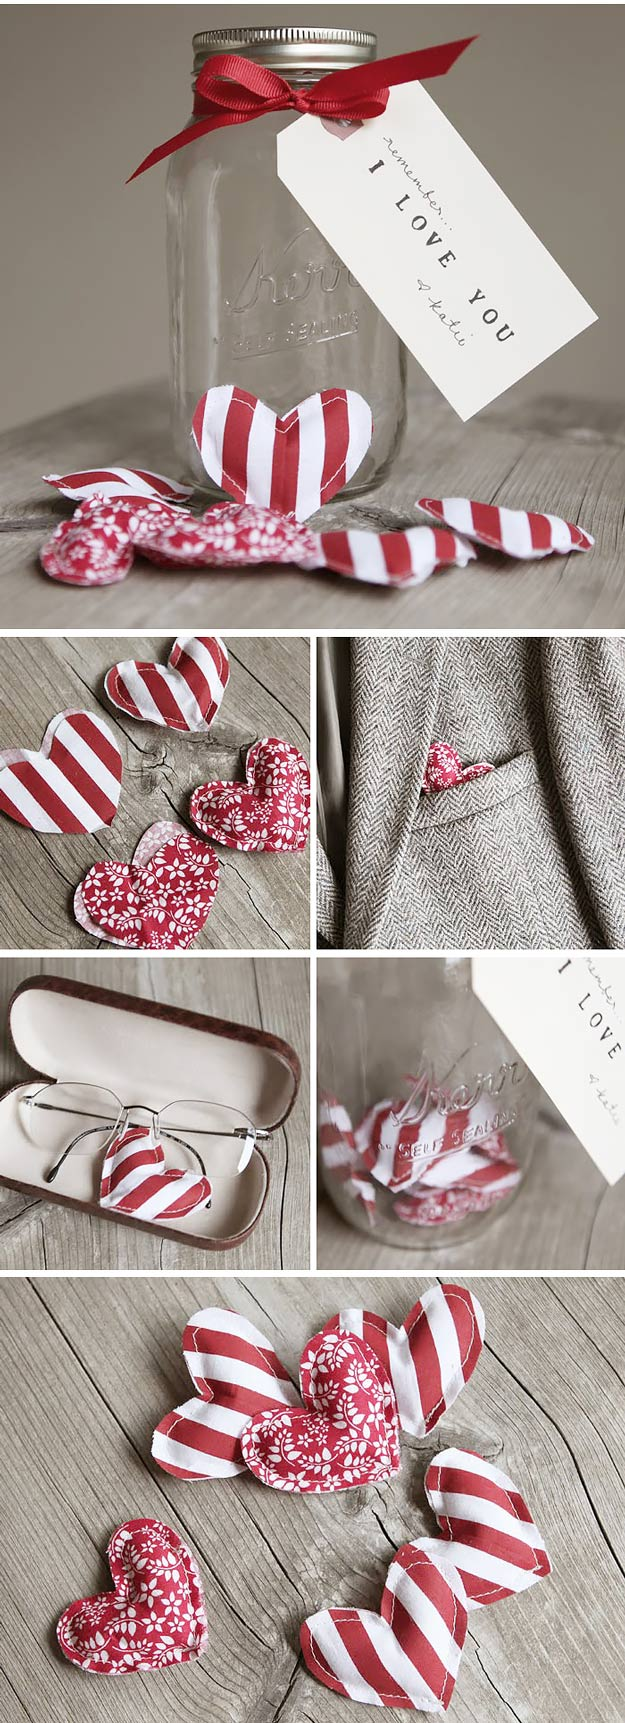 Mason Jar Valentine Gifts and Crafts | DIY Ideas for Valentines Day for Cute Gift Giving and Decor | Fabric Hearts in Mason Jar | http://diyjoy.com/mason-jar-valentine-crafts